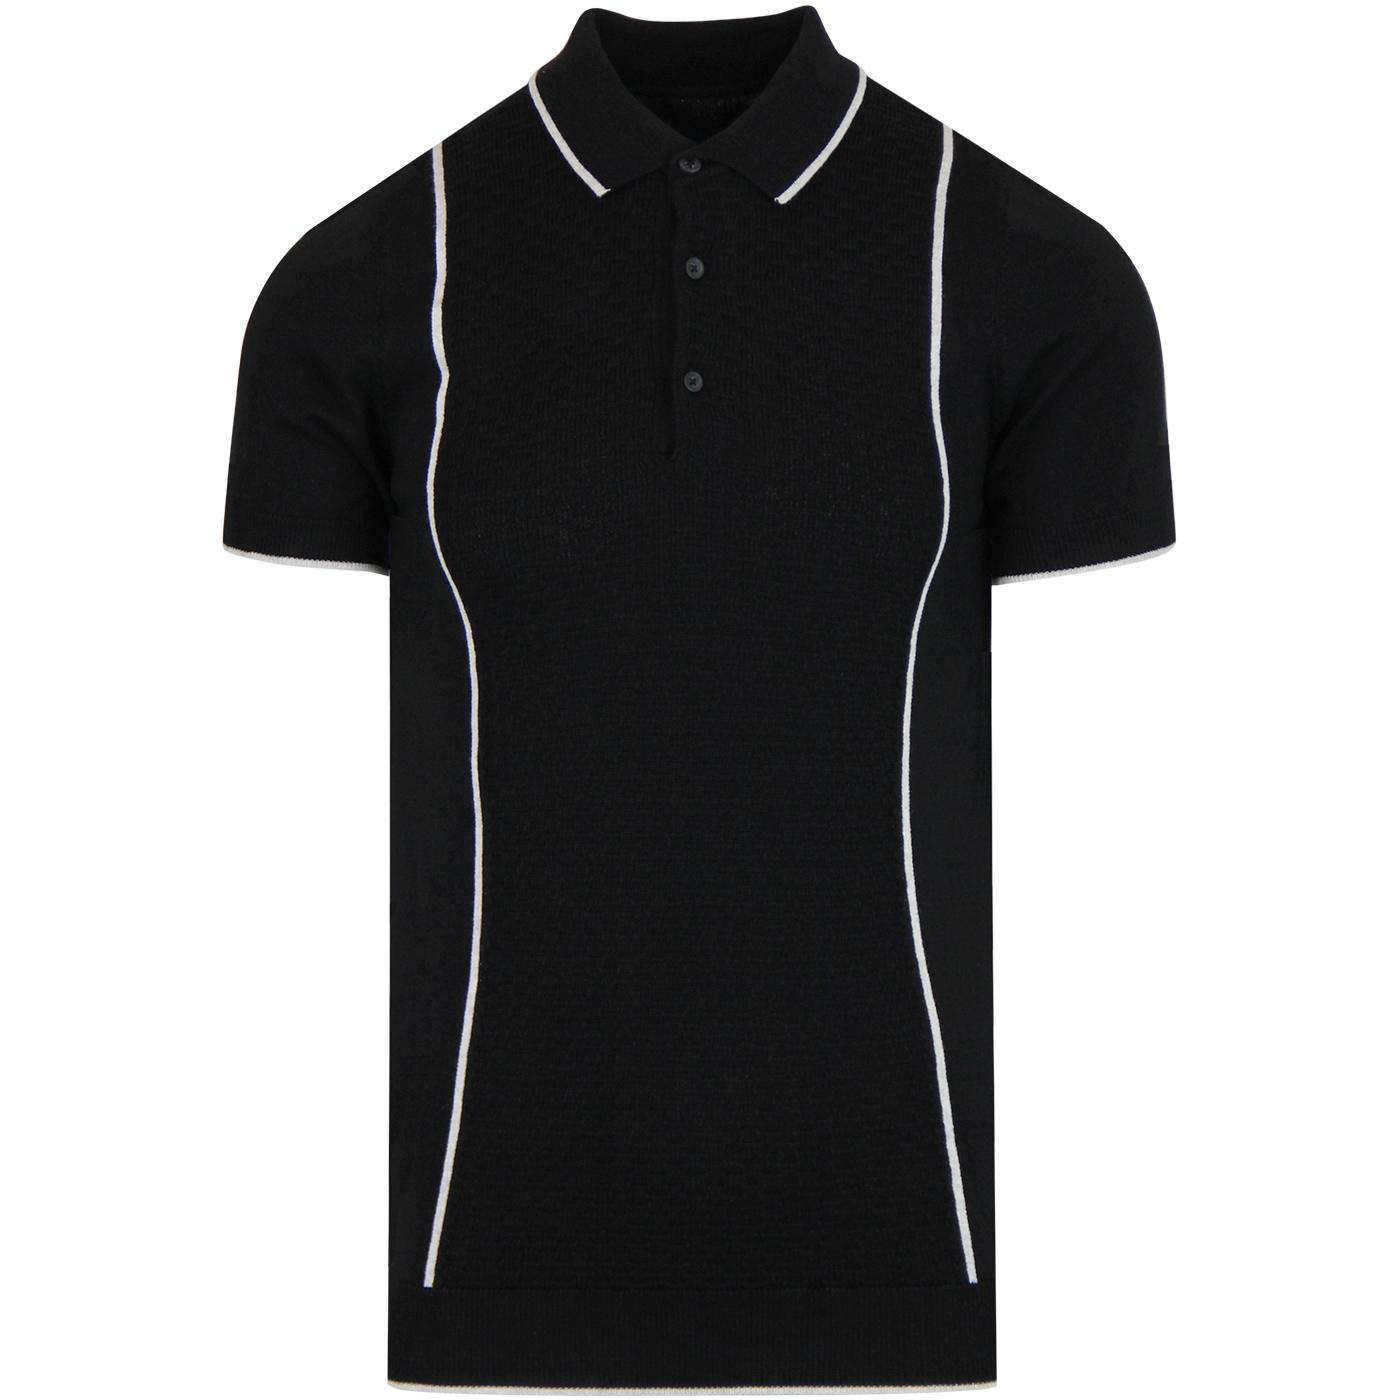 GUIDE LONDON Textured Panel Knitted Mod Polo BLACK